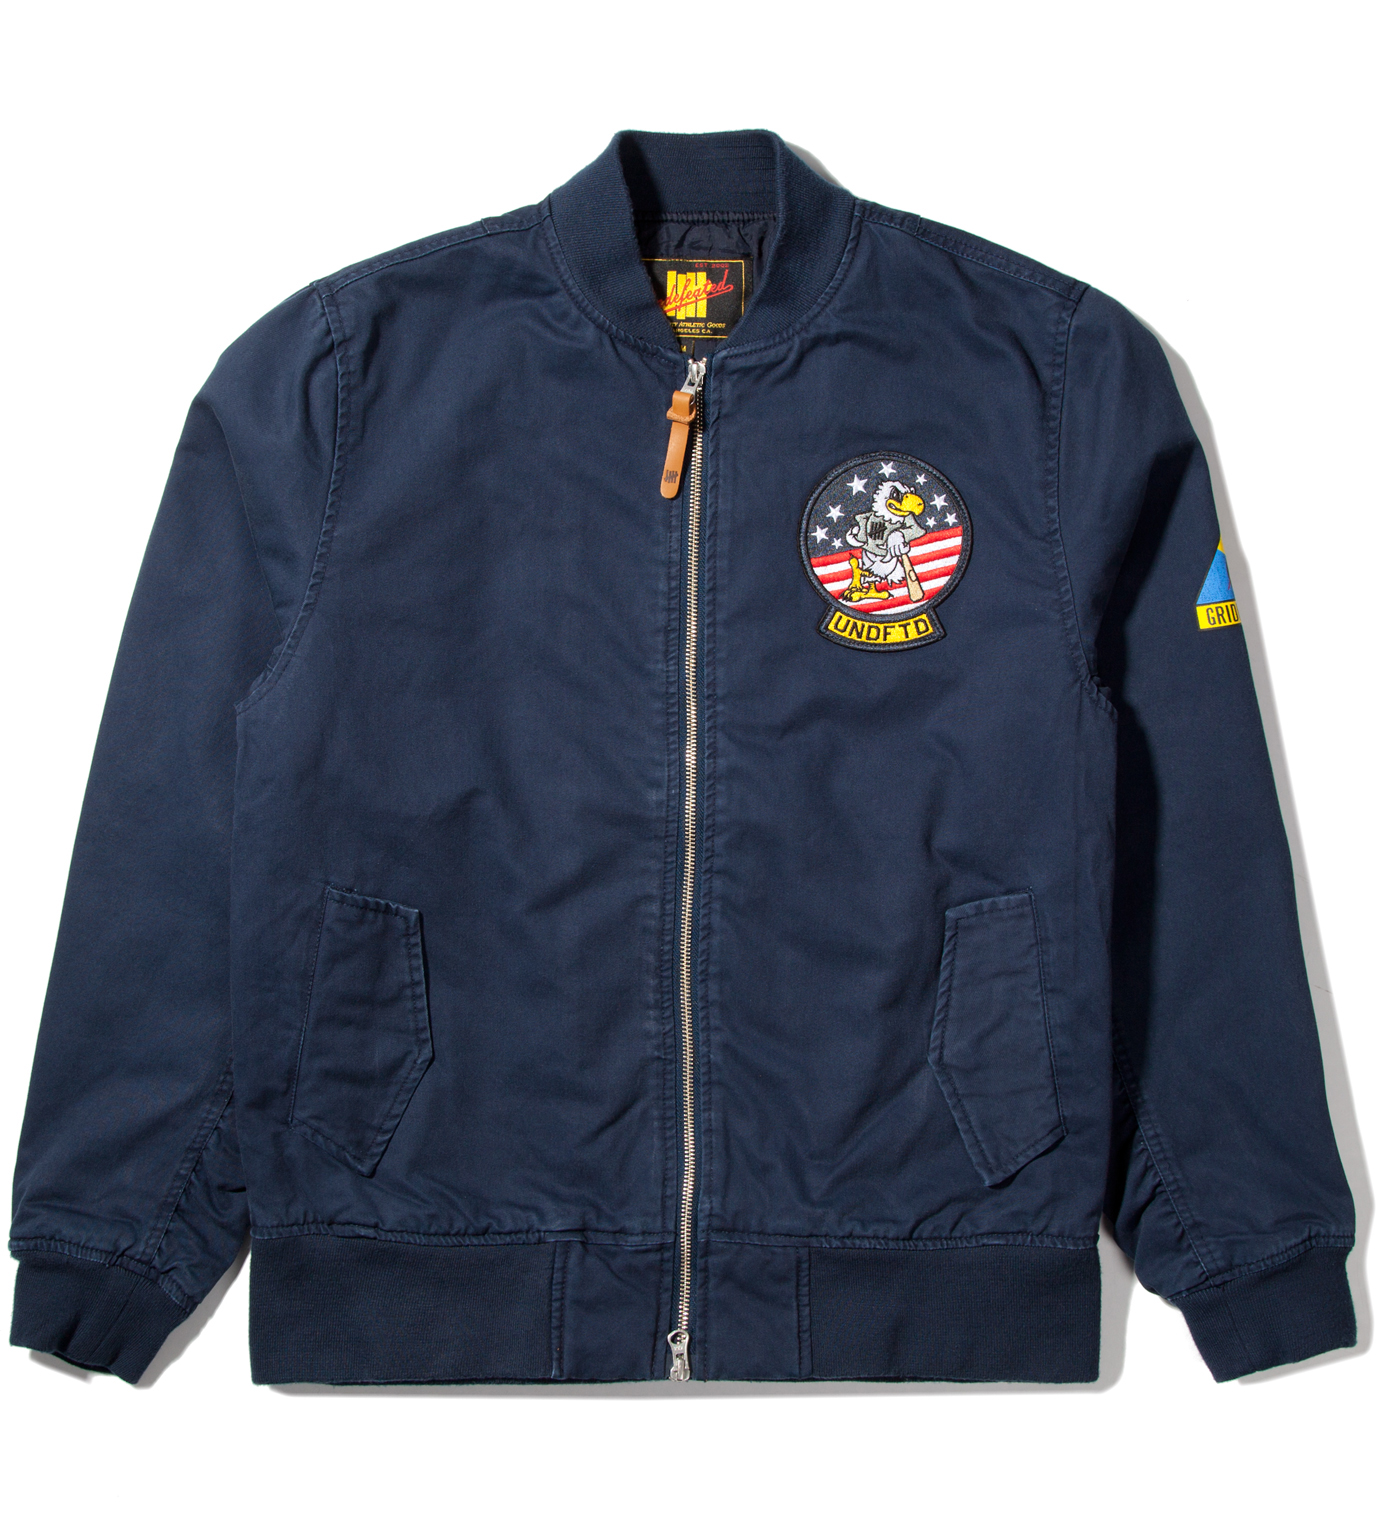 UNDEFEATED Navy Tomcat Zip Jacket